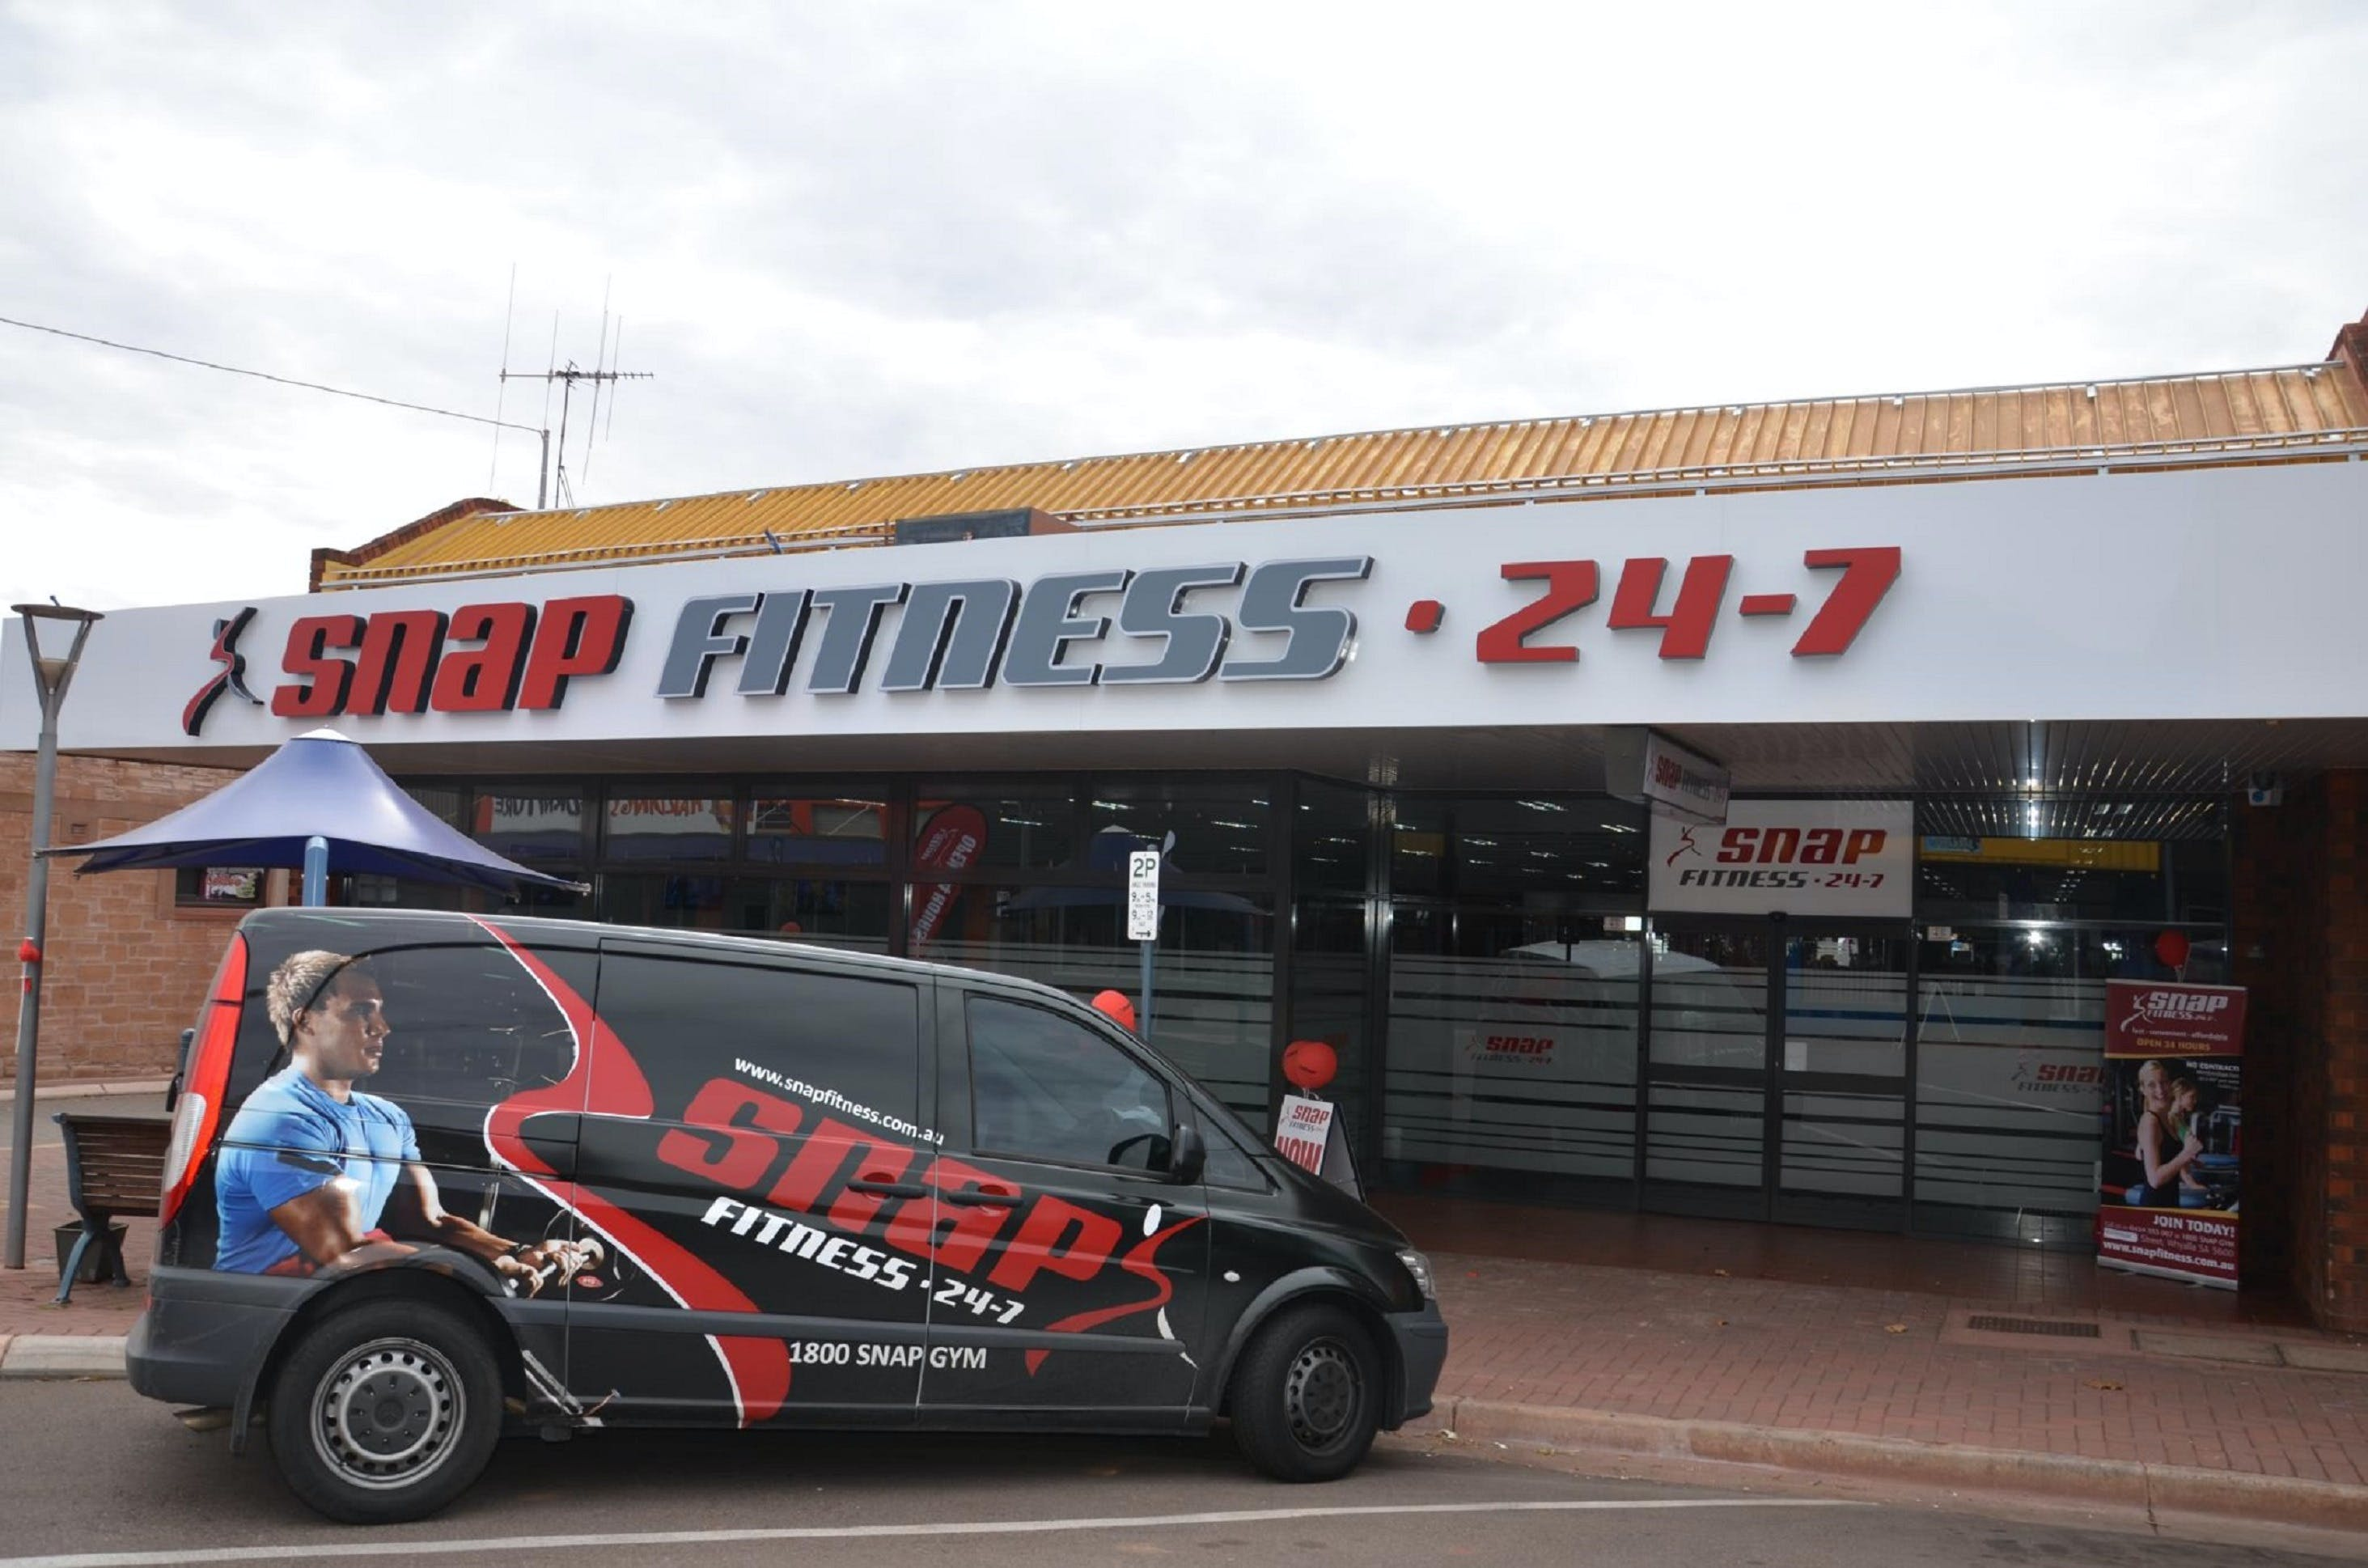 Snap Fitness Whyalla 24/7 gym - Accommodation VIC